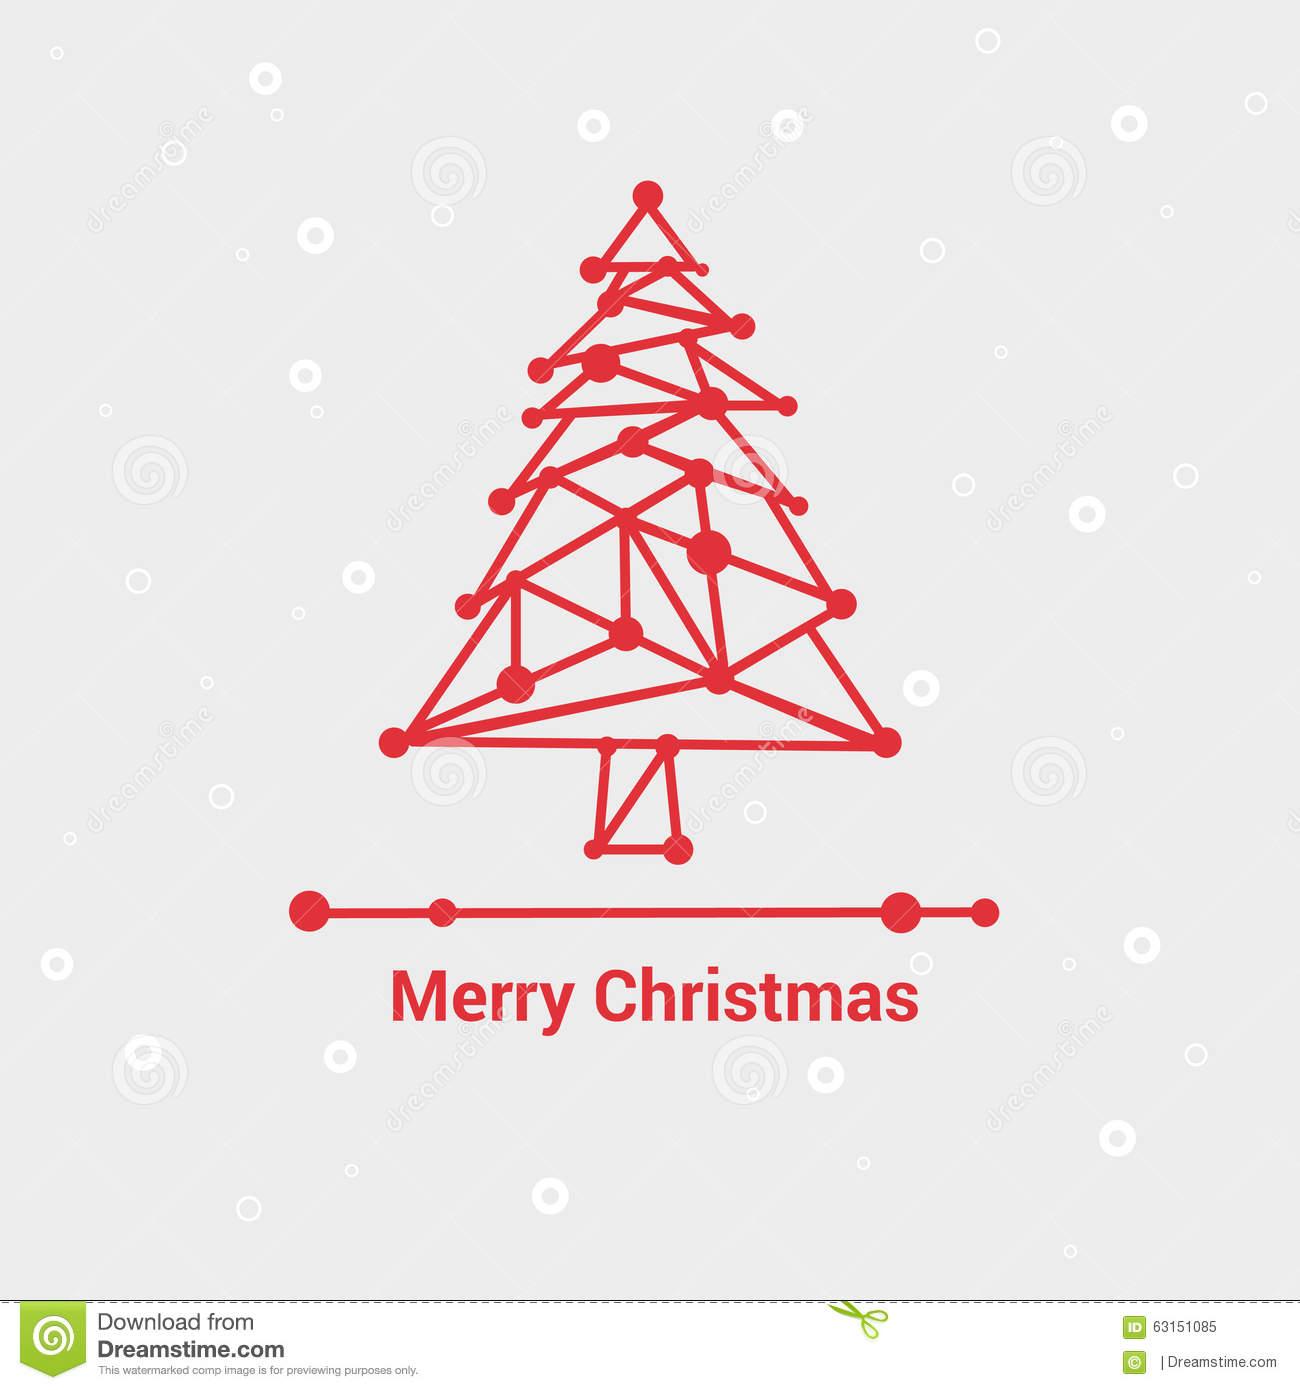 Merry Christmas And Happy New Year, Line Minimalist Style